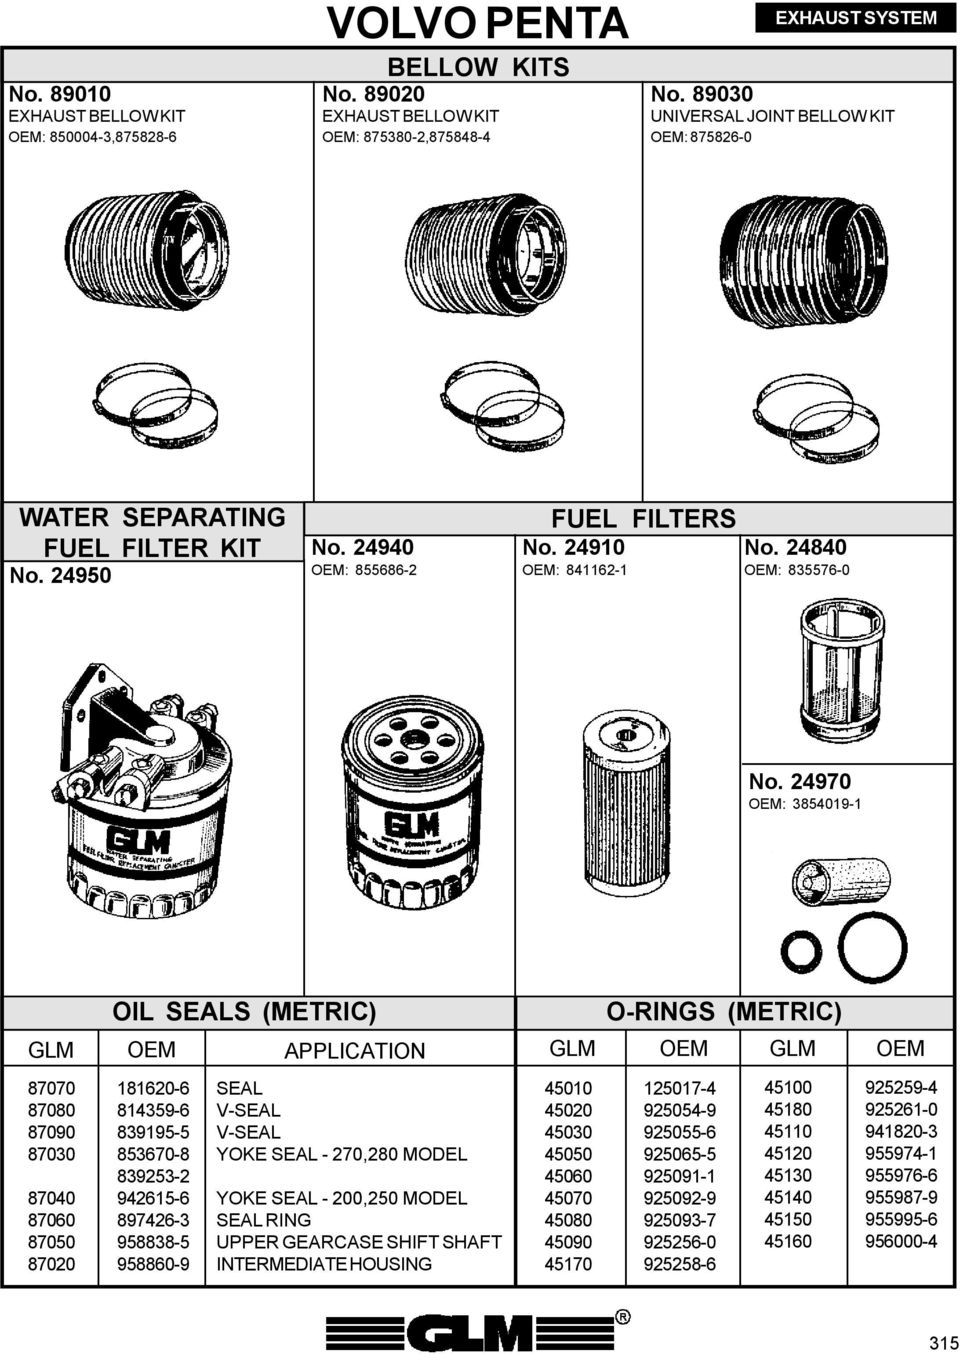 Volvo Penta Page Guide Cooling System Drive Systems Transom Ford 7 3 Fuel Filter Assy 2970 Oem 350191 Oil Seals Metric Orings Glm Application